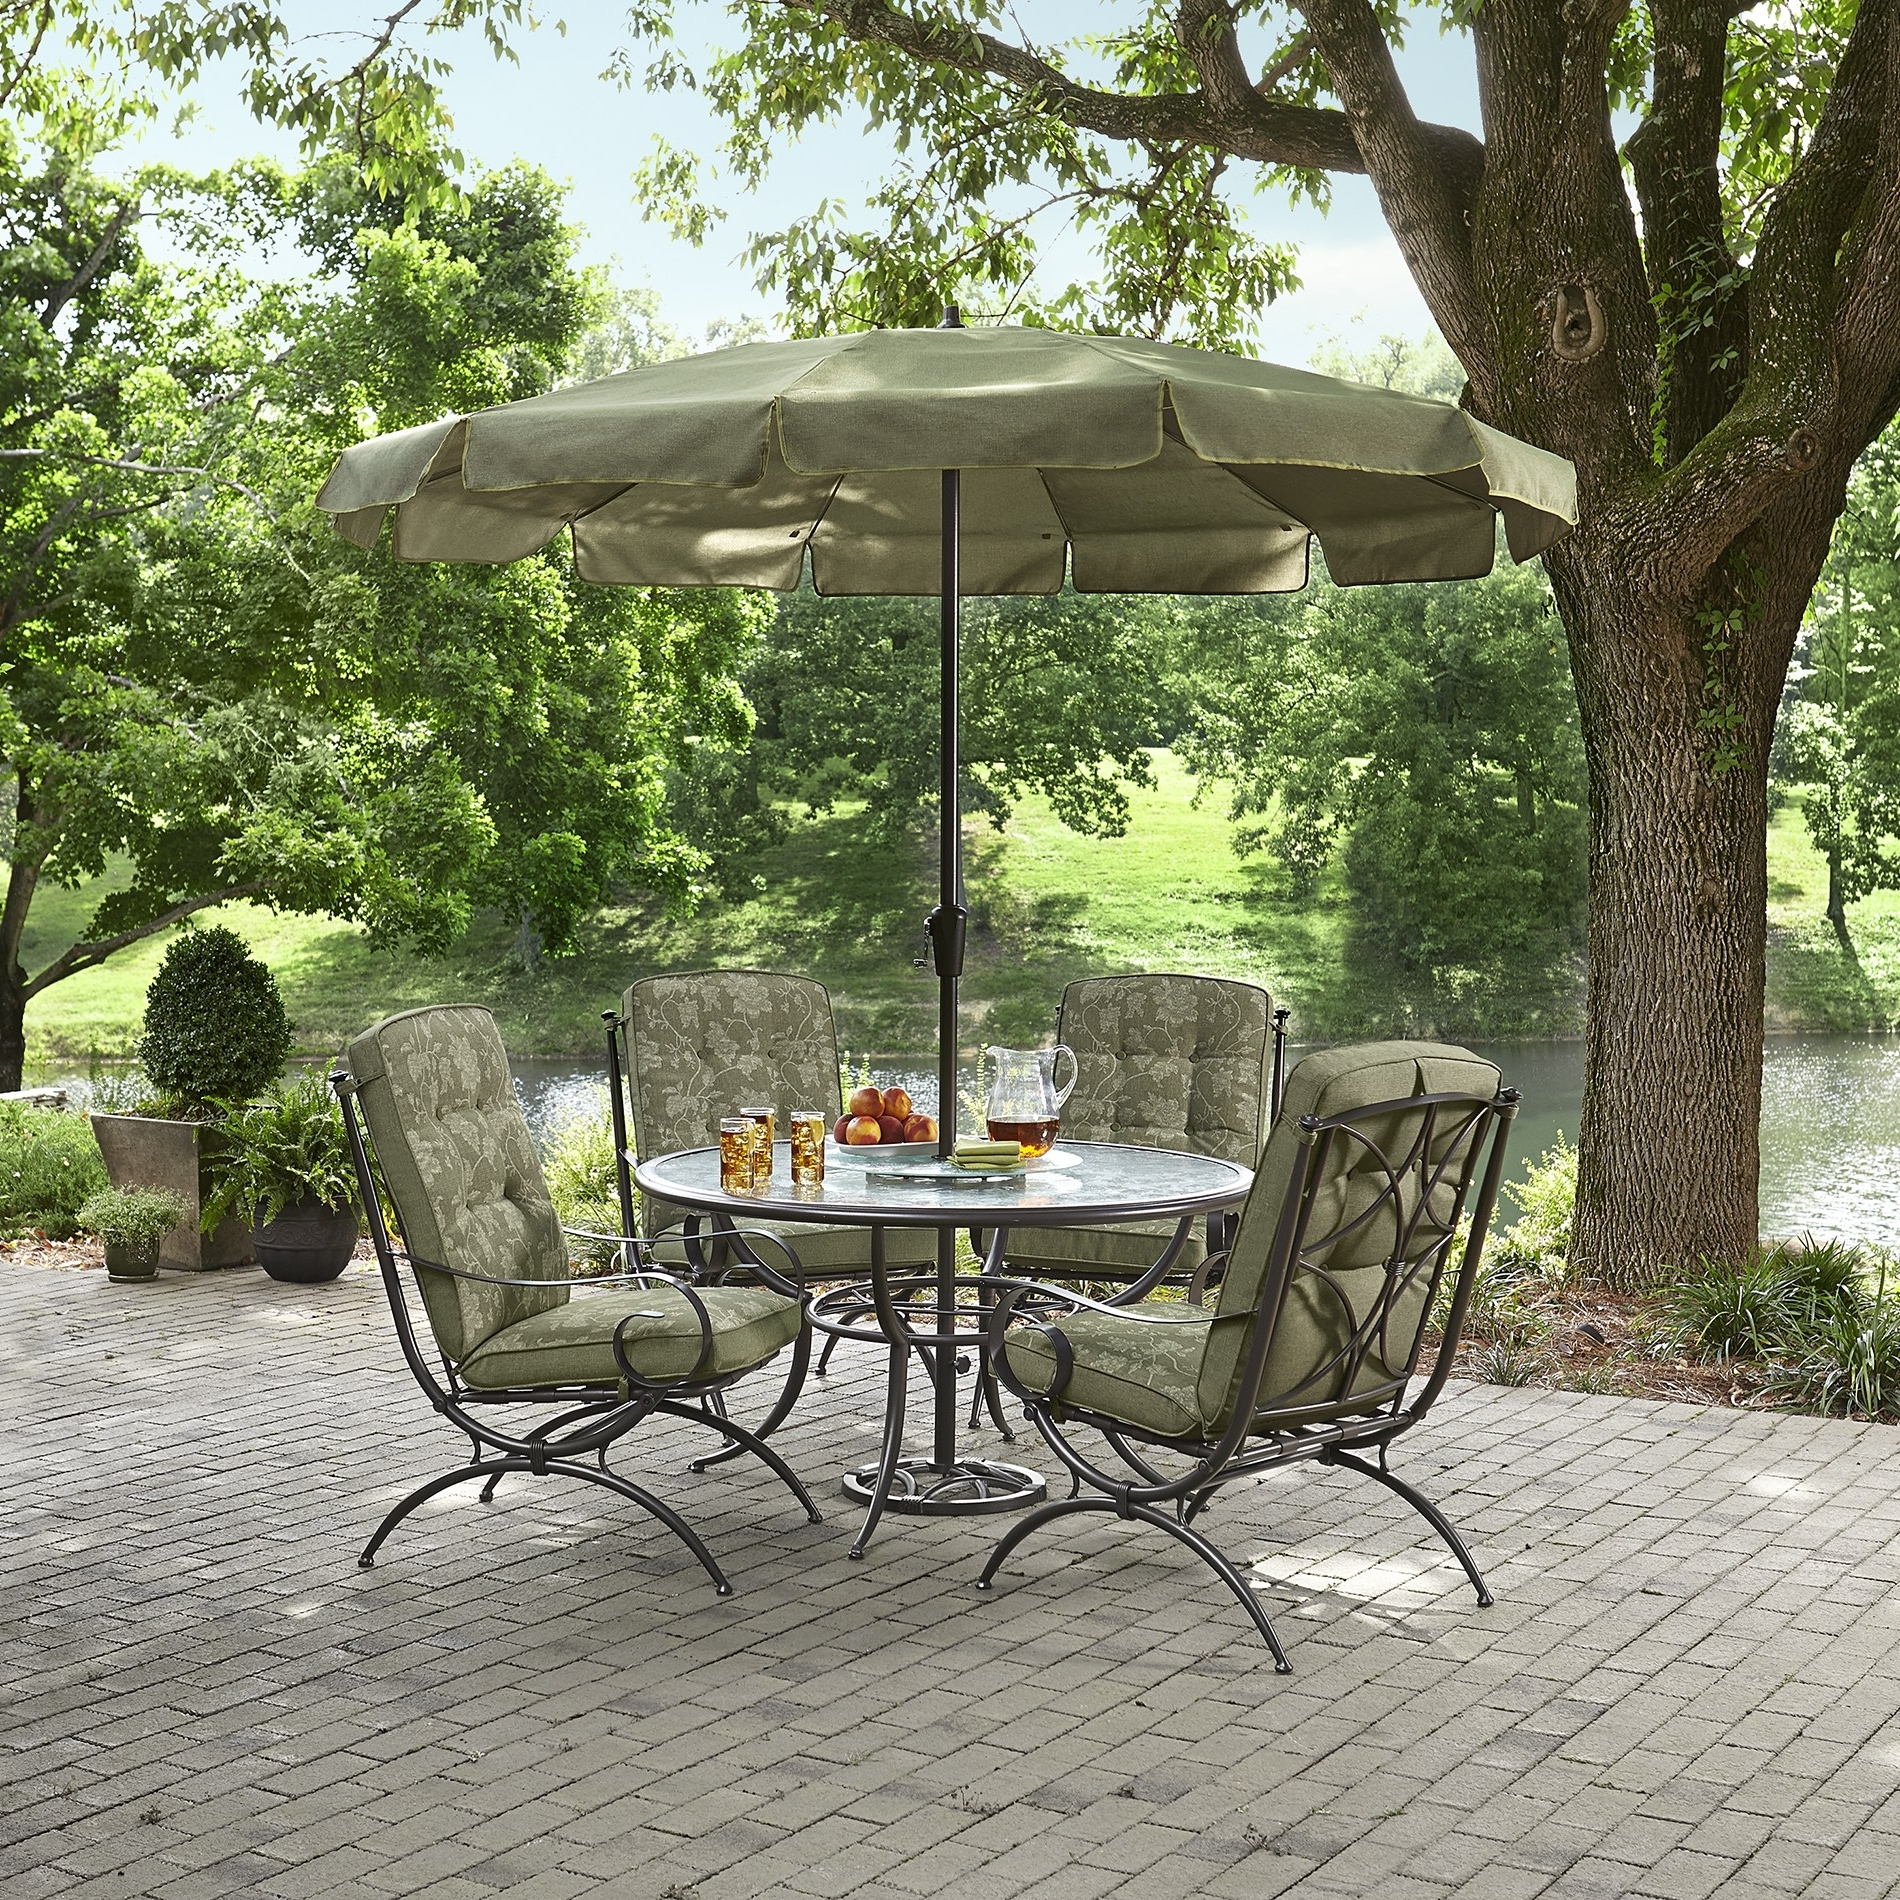 Famous Kmart Patio Umbrellas In Peaceably Cheap Wicker Furniture Kmart Patio Umbrellas Sears Patio (View 6 of 20)